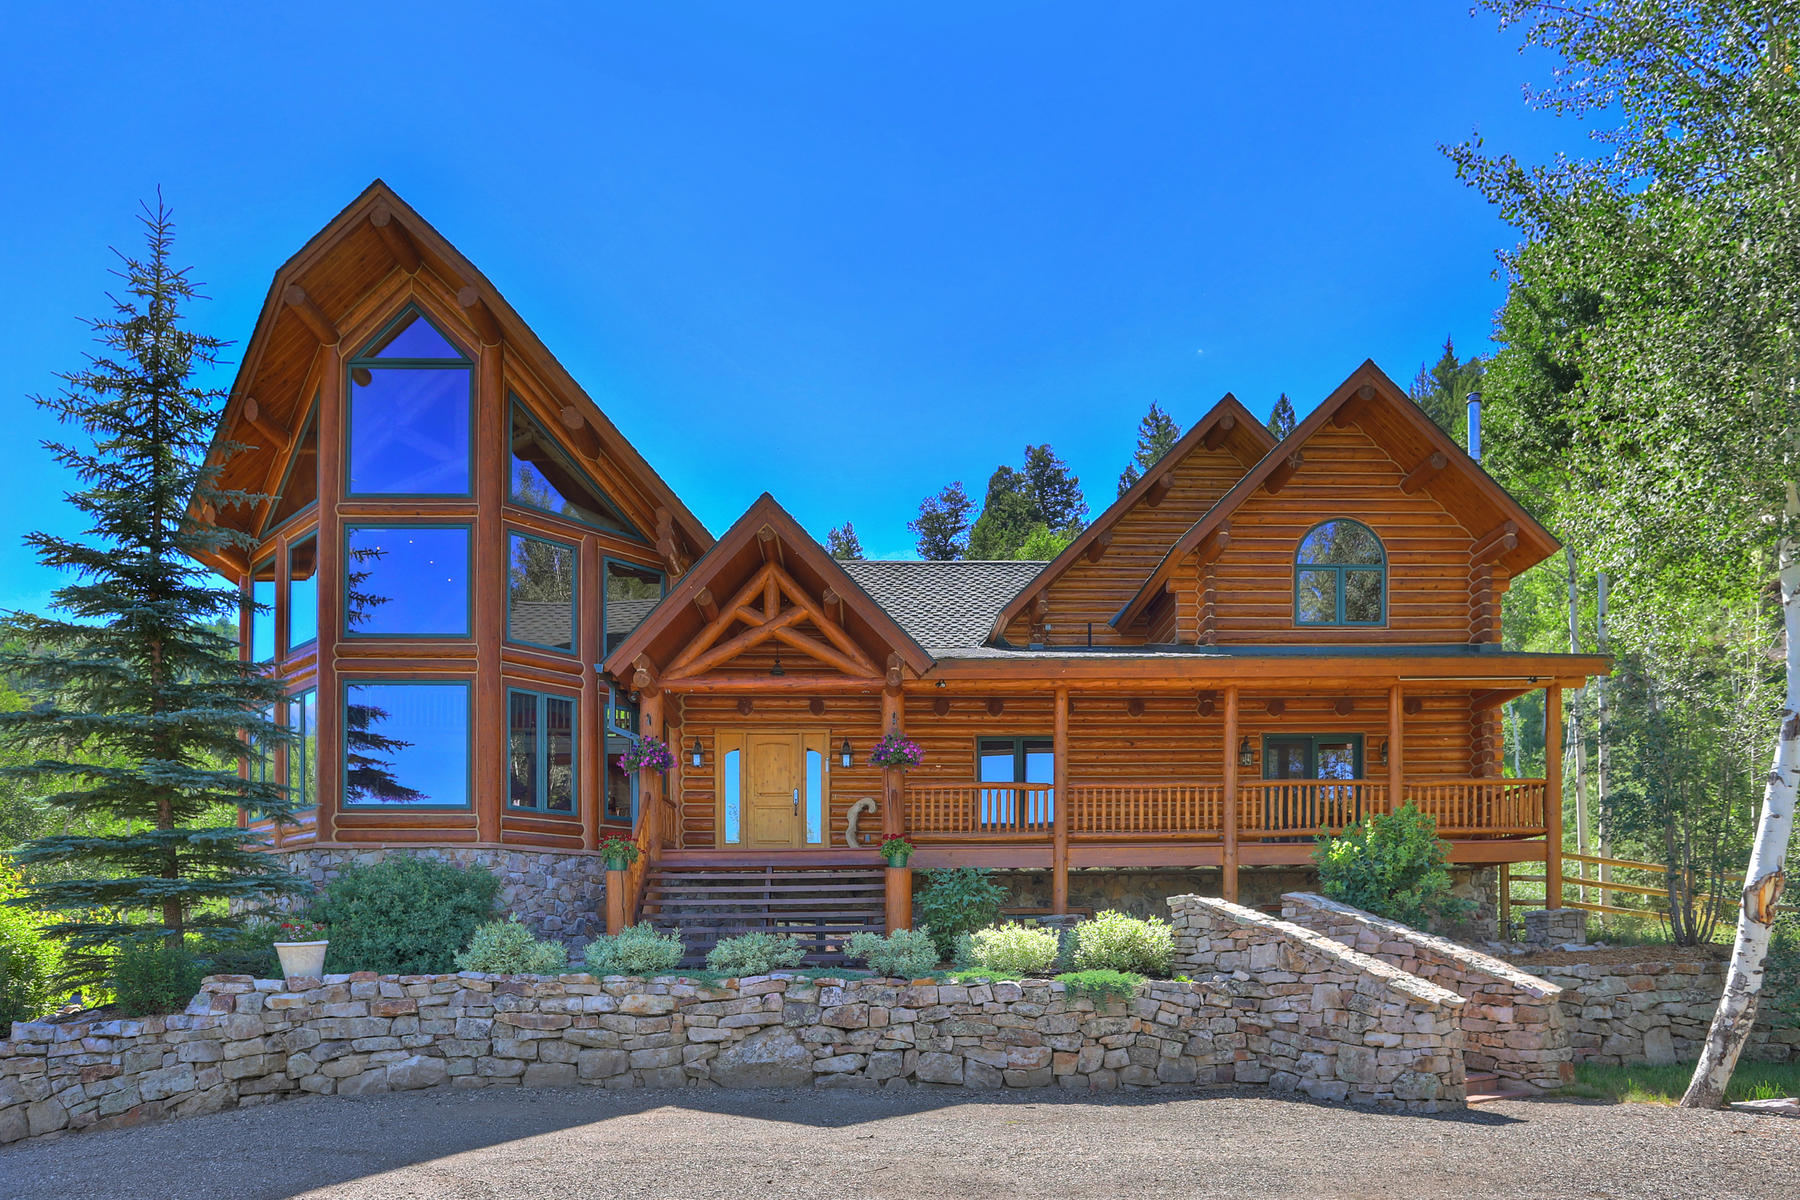 Single Family Homes for Active at Exceptional Log Home on 20 Acres 0630 CR 2407 Silverthorne, Colorado 80498 United States